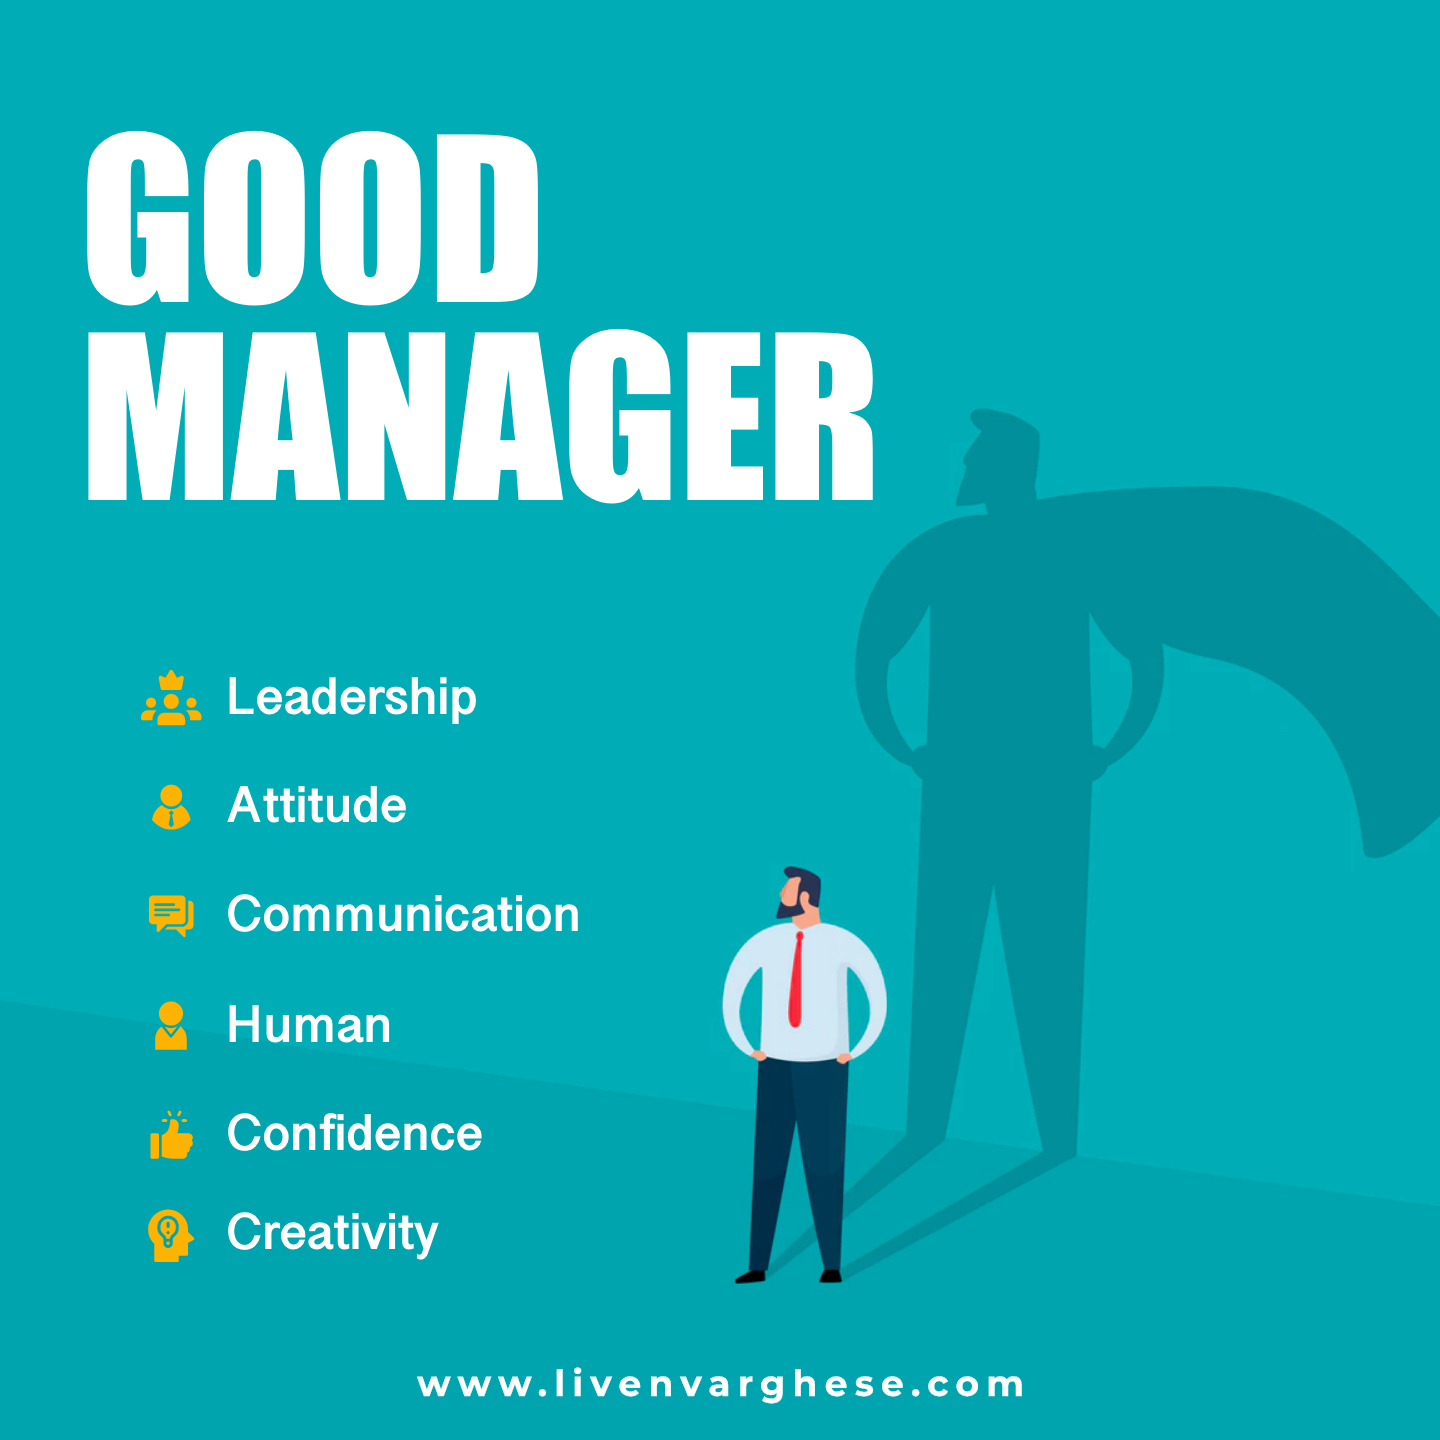 Good Manager Qualities